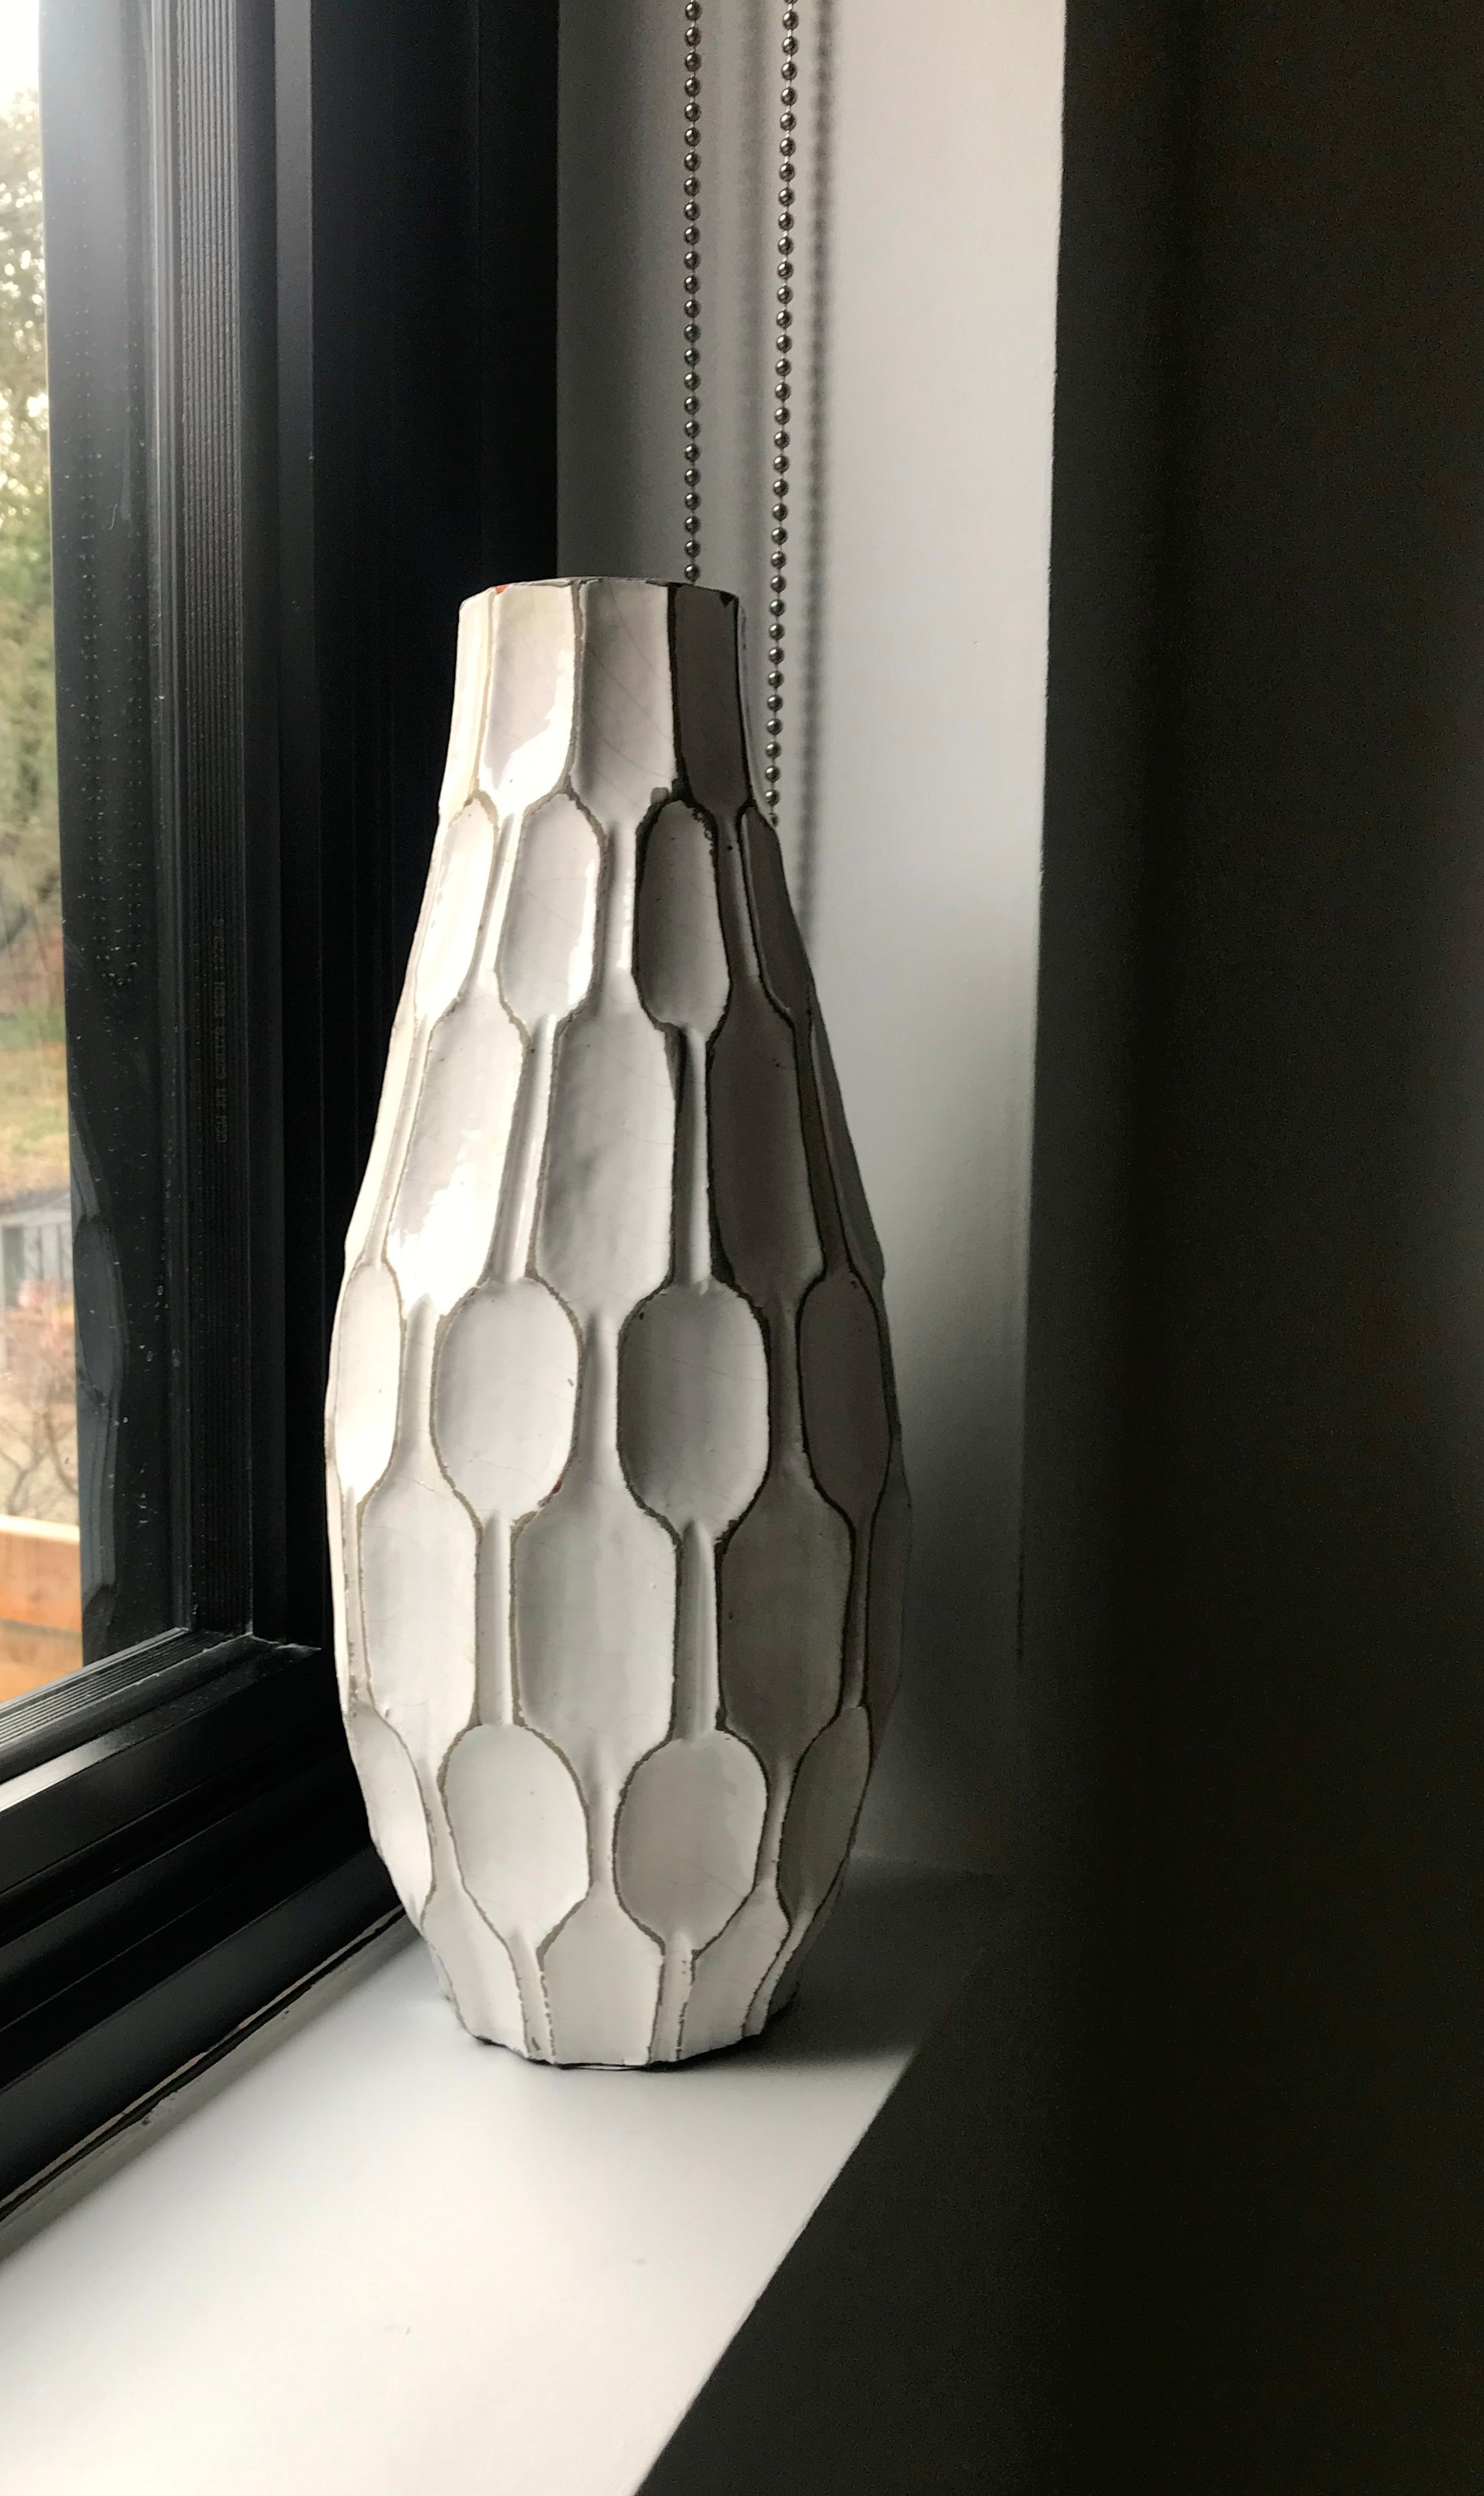 I think this vase from west elm works well here.